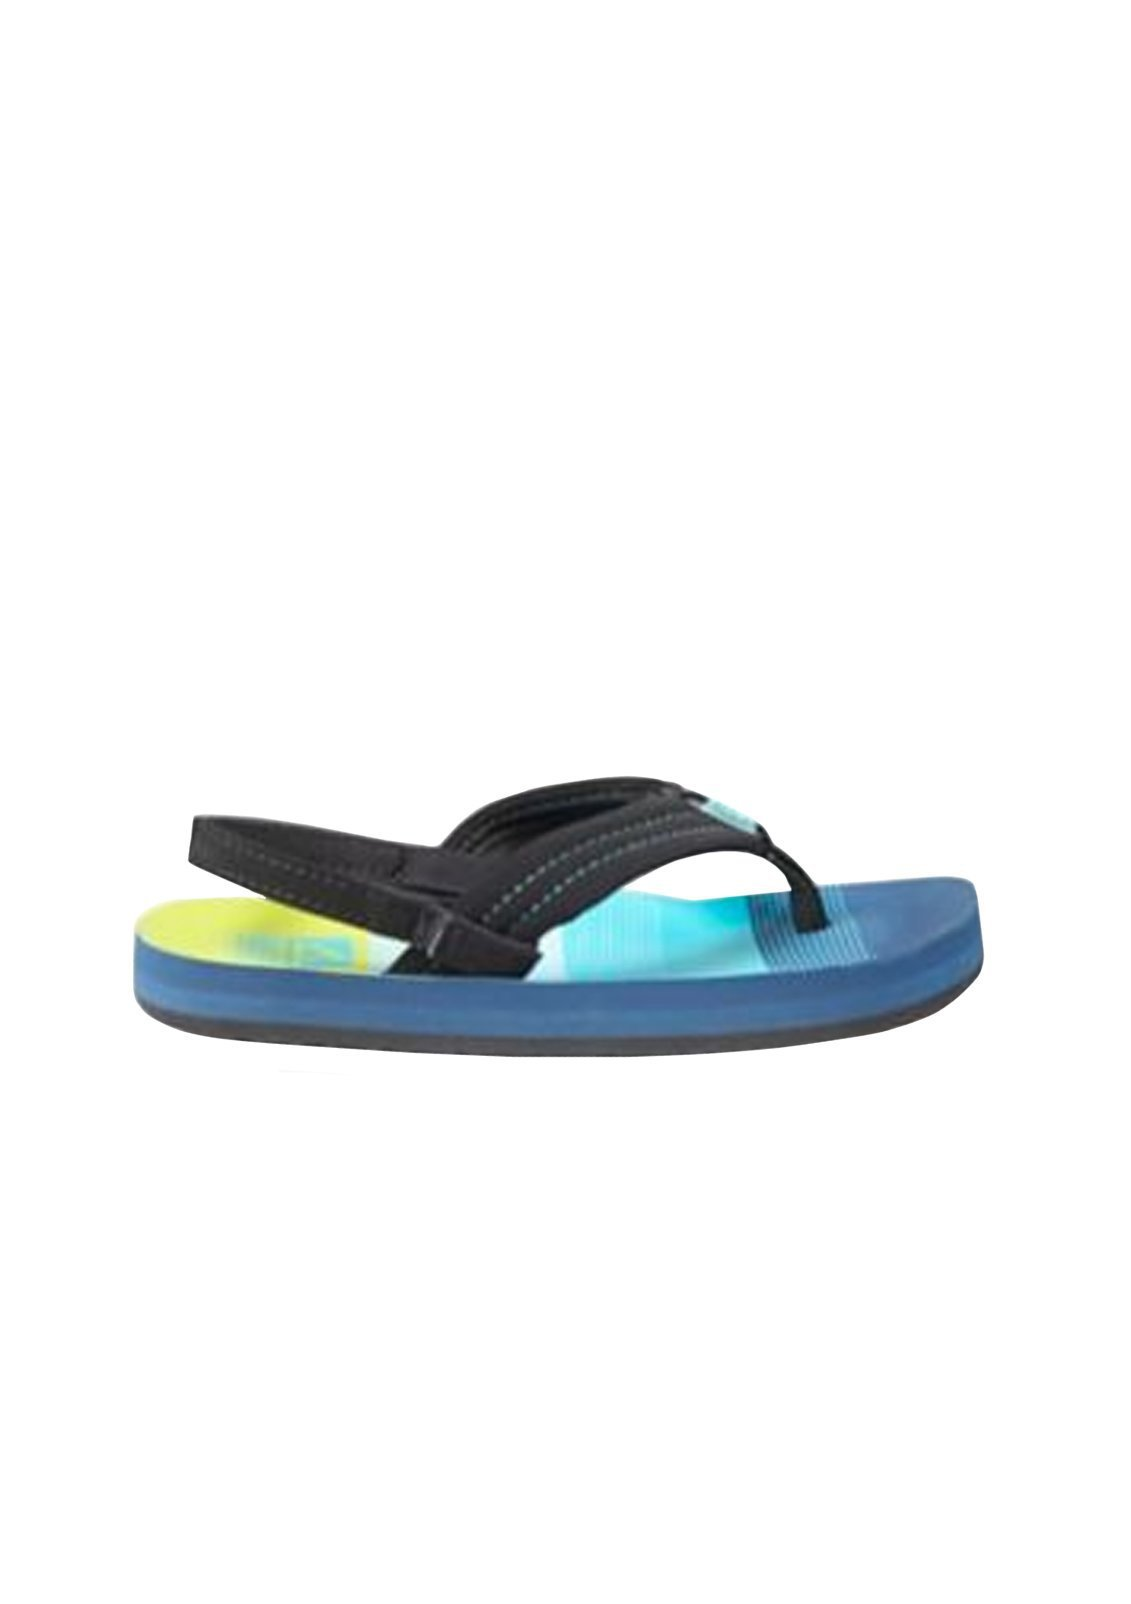 9a3fb325bcb8 Kids Footwear – Jacks Surfboards